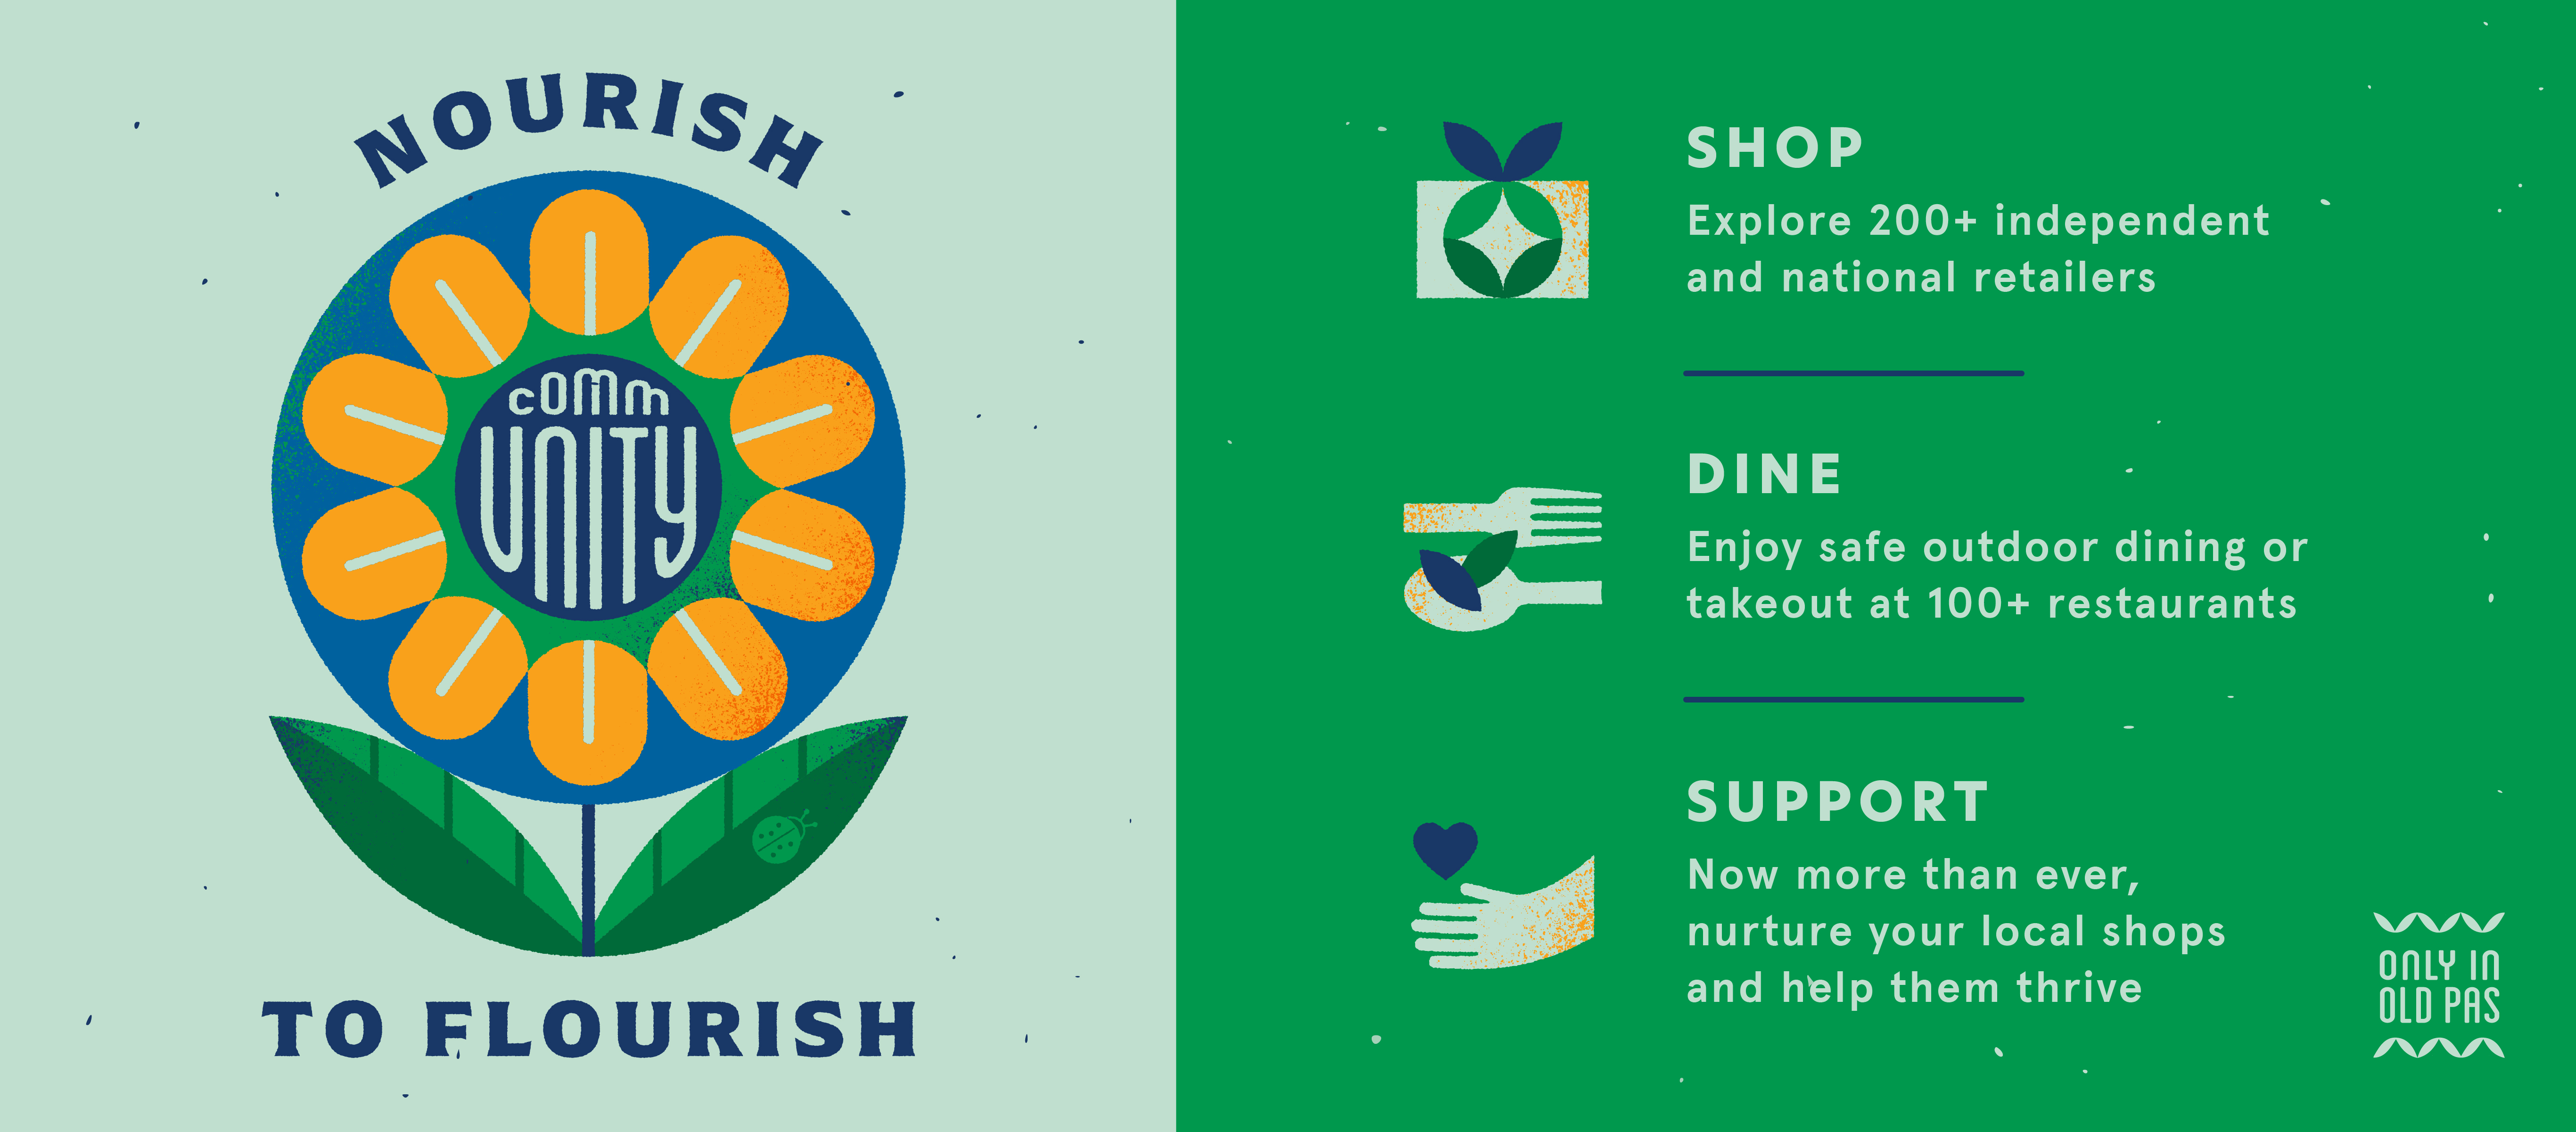 Support our local community - Nourish to Flourish